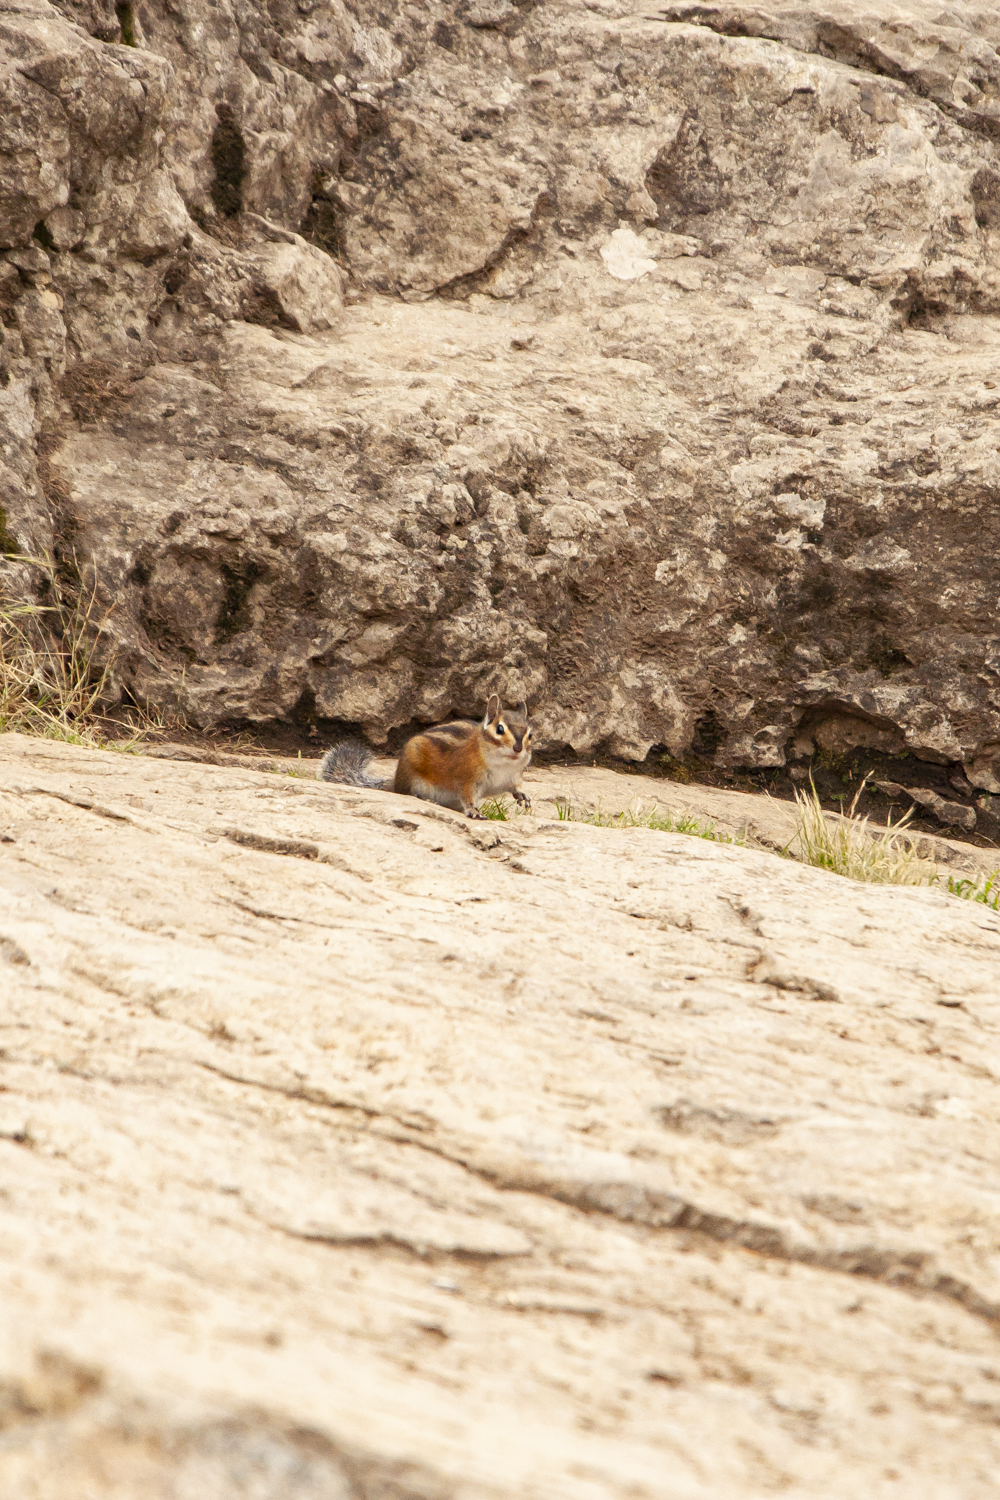 Chipmunks at the peak. Looking for hikers to throw them a bite most likely. They were bold around us humans.